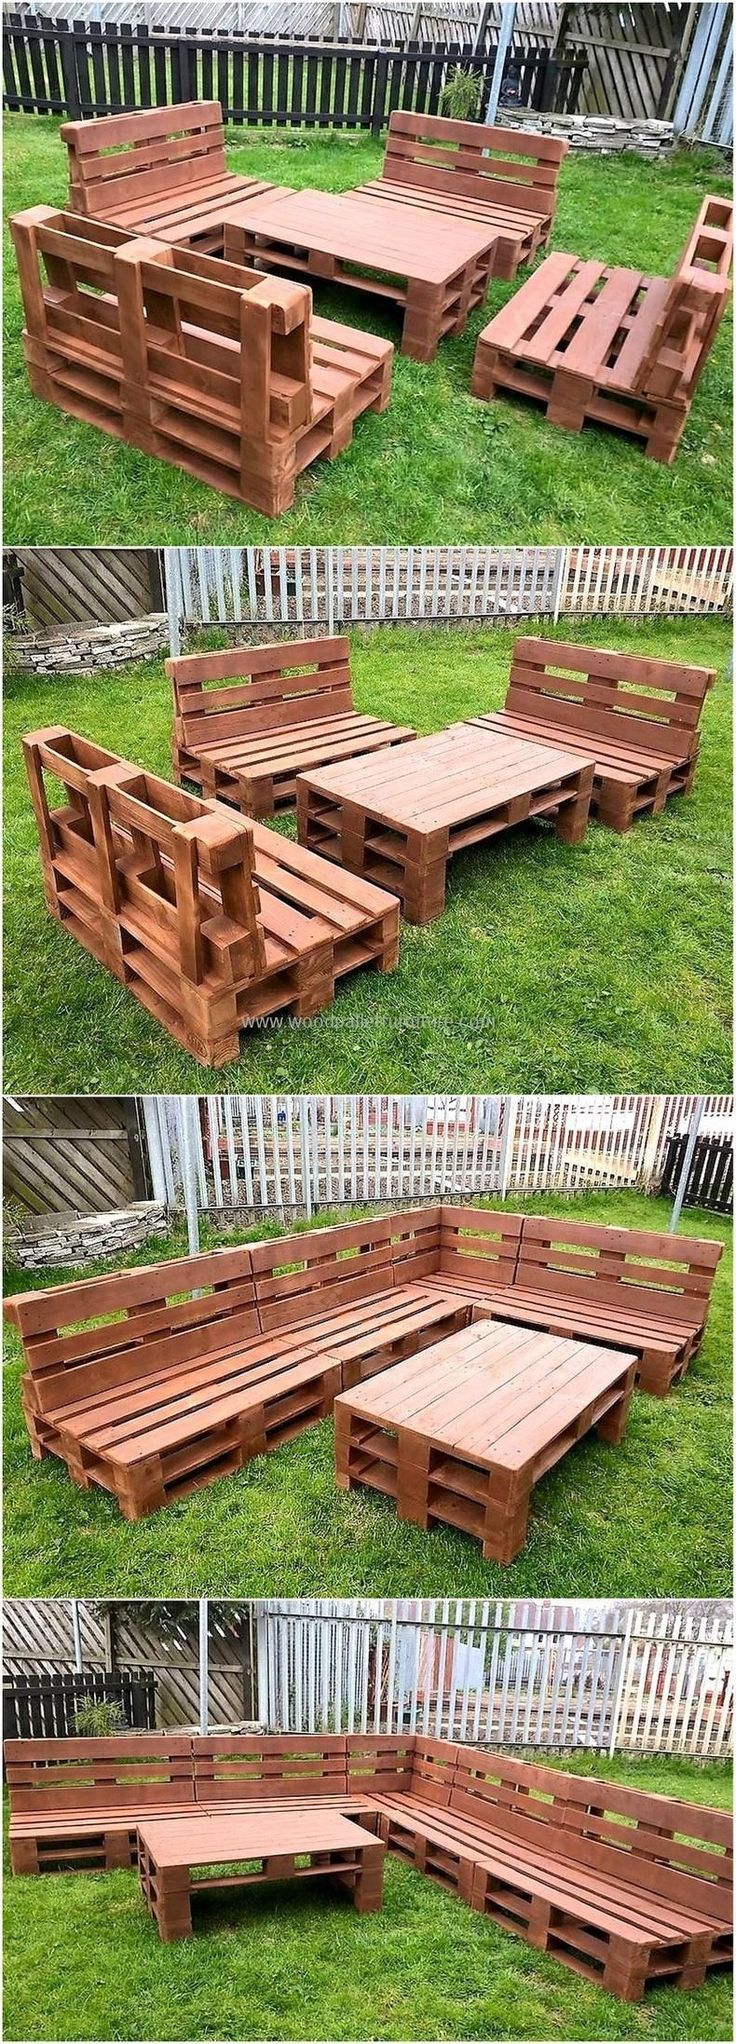 Pallets garden furniture project diy in pinterest pallet